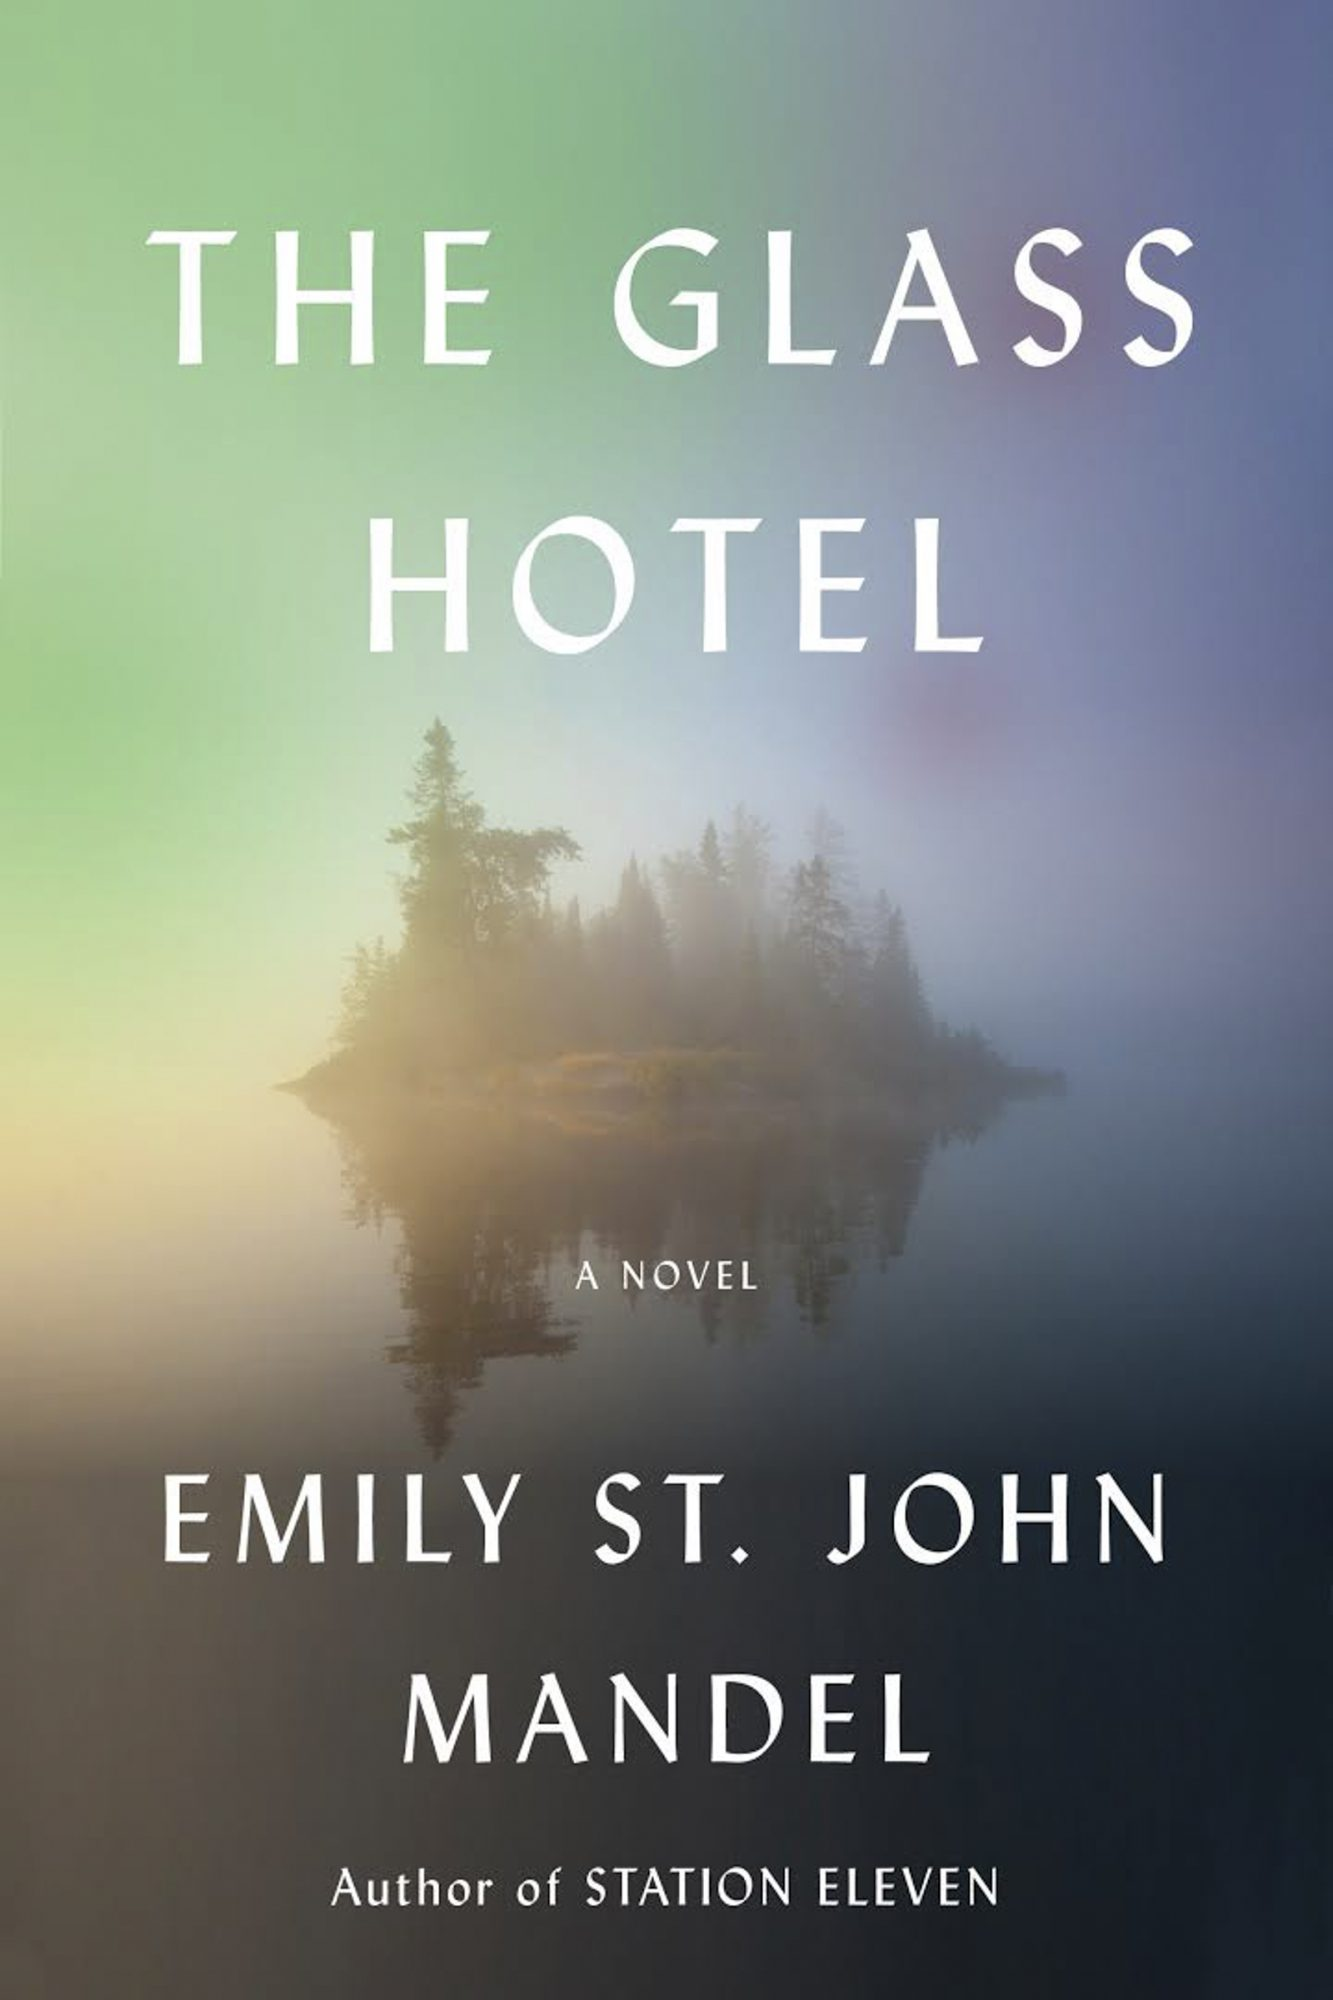 The Glass Hotel by Emily St. John Mandel CR: Knopf Doubleday